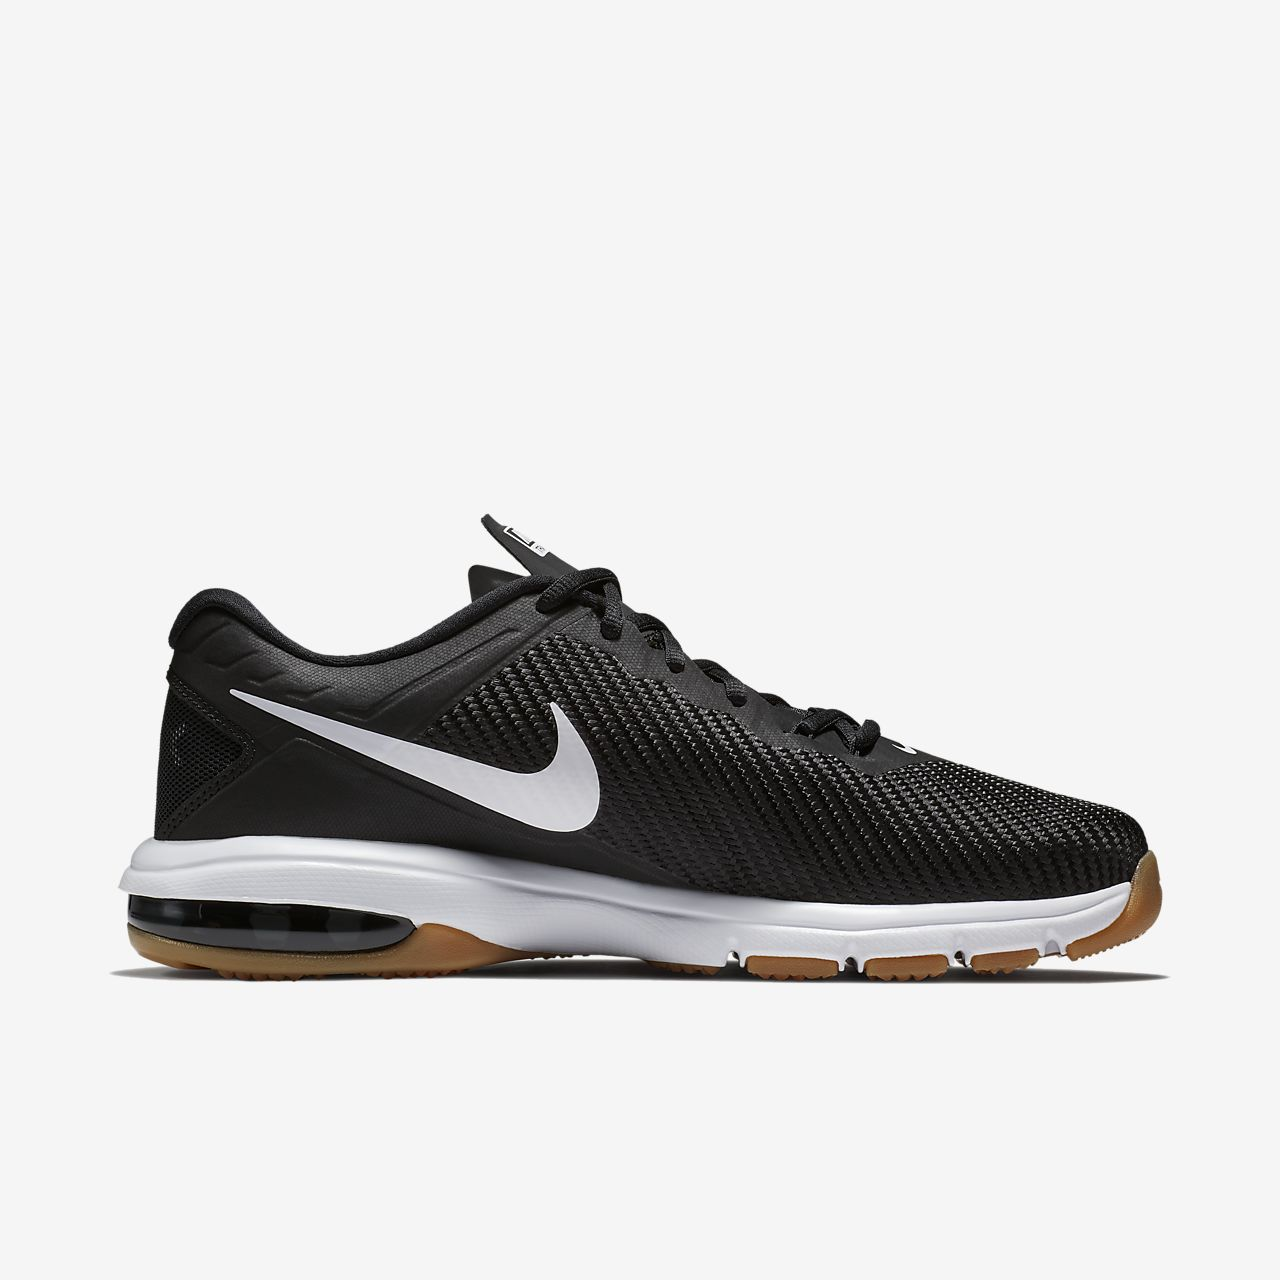 nike shoes drop dates hccs learning wb 868005